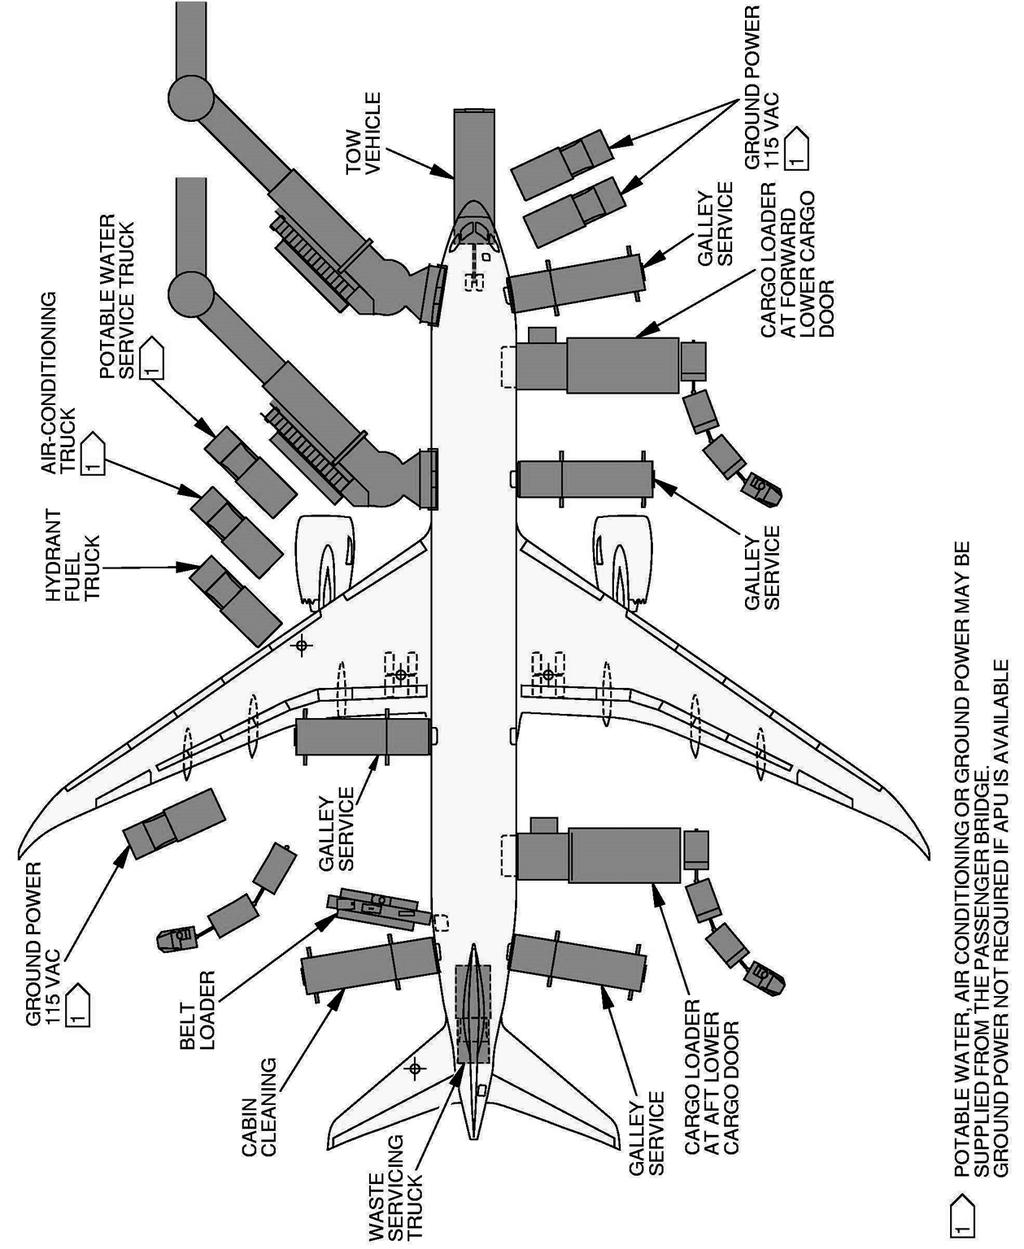 787 airplane characteristics for airport planning pdf Simple Diagram of an Airplane 5 1 2 airplane servicing arrangement typical